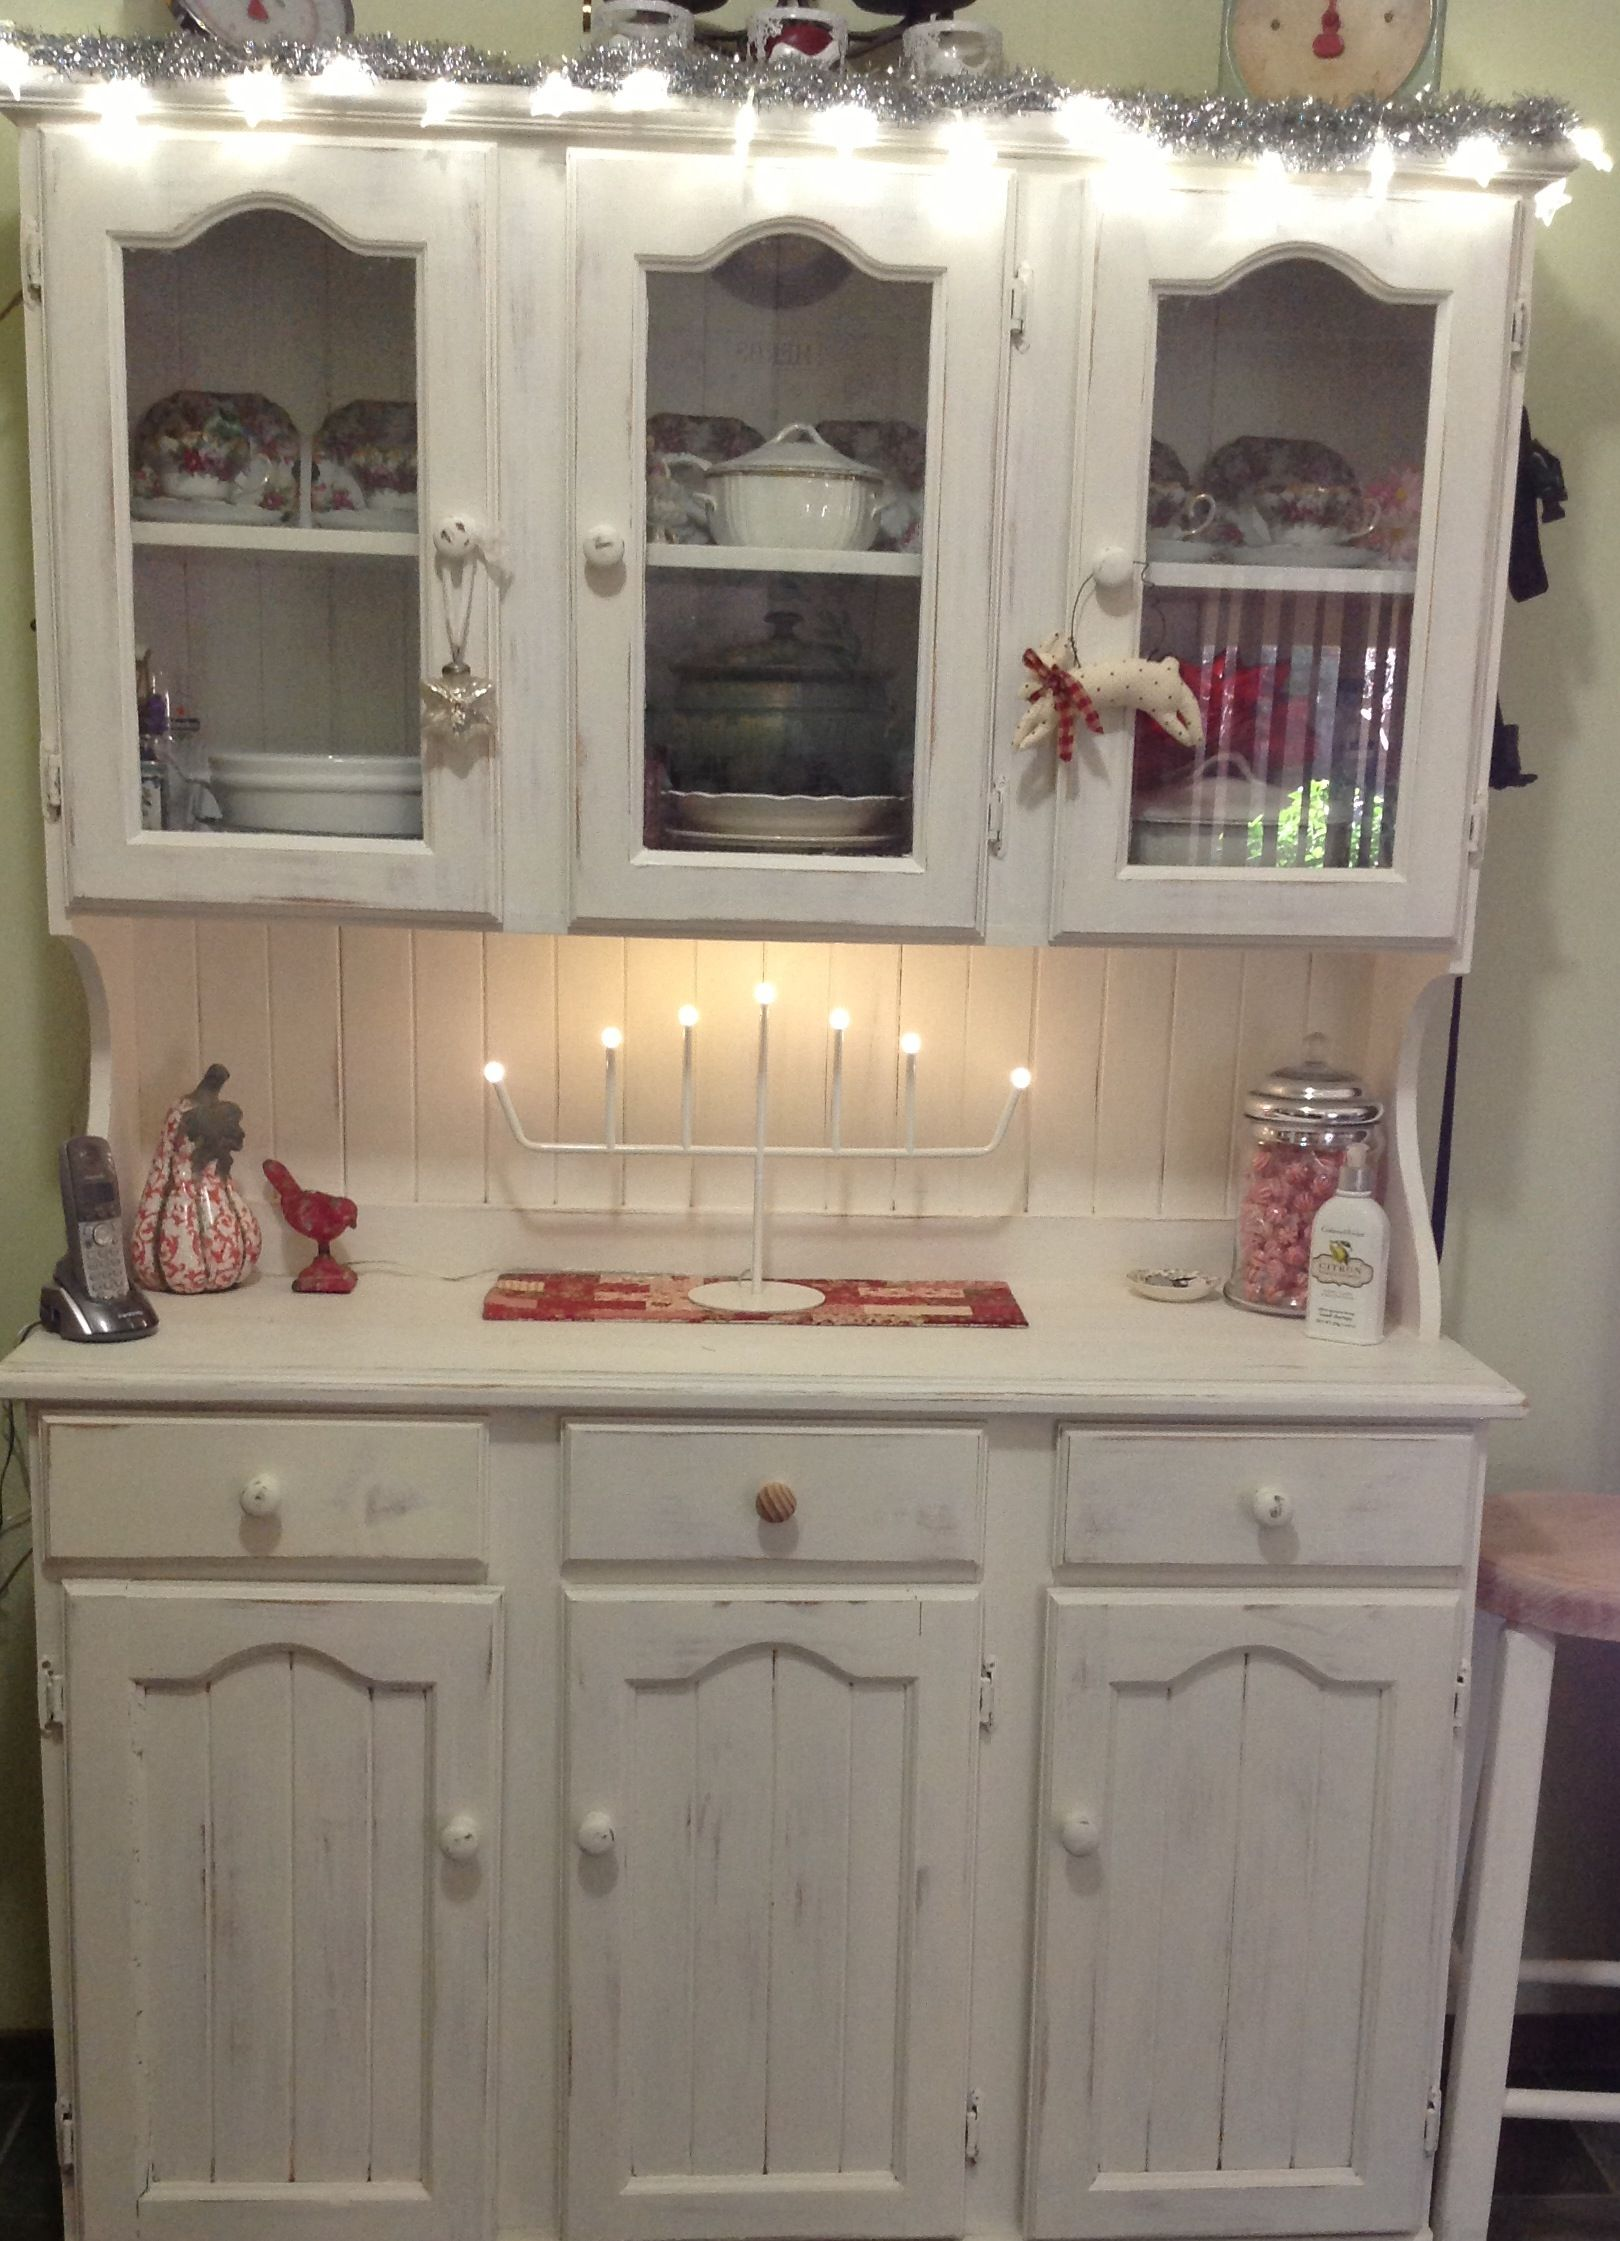 My old pine dresser painted and dressed up for Christmas.